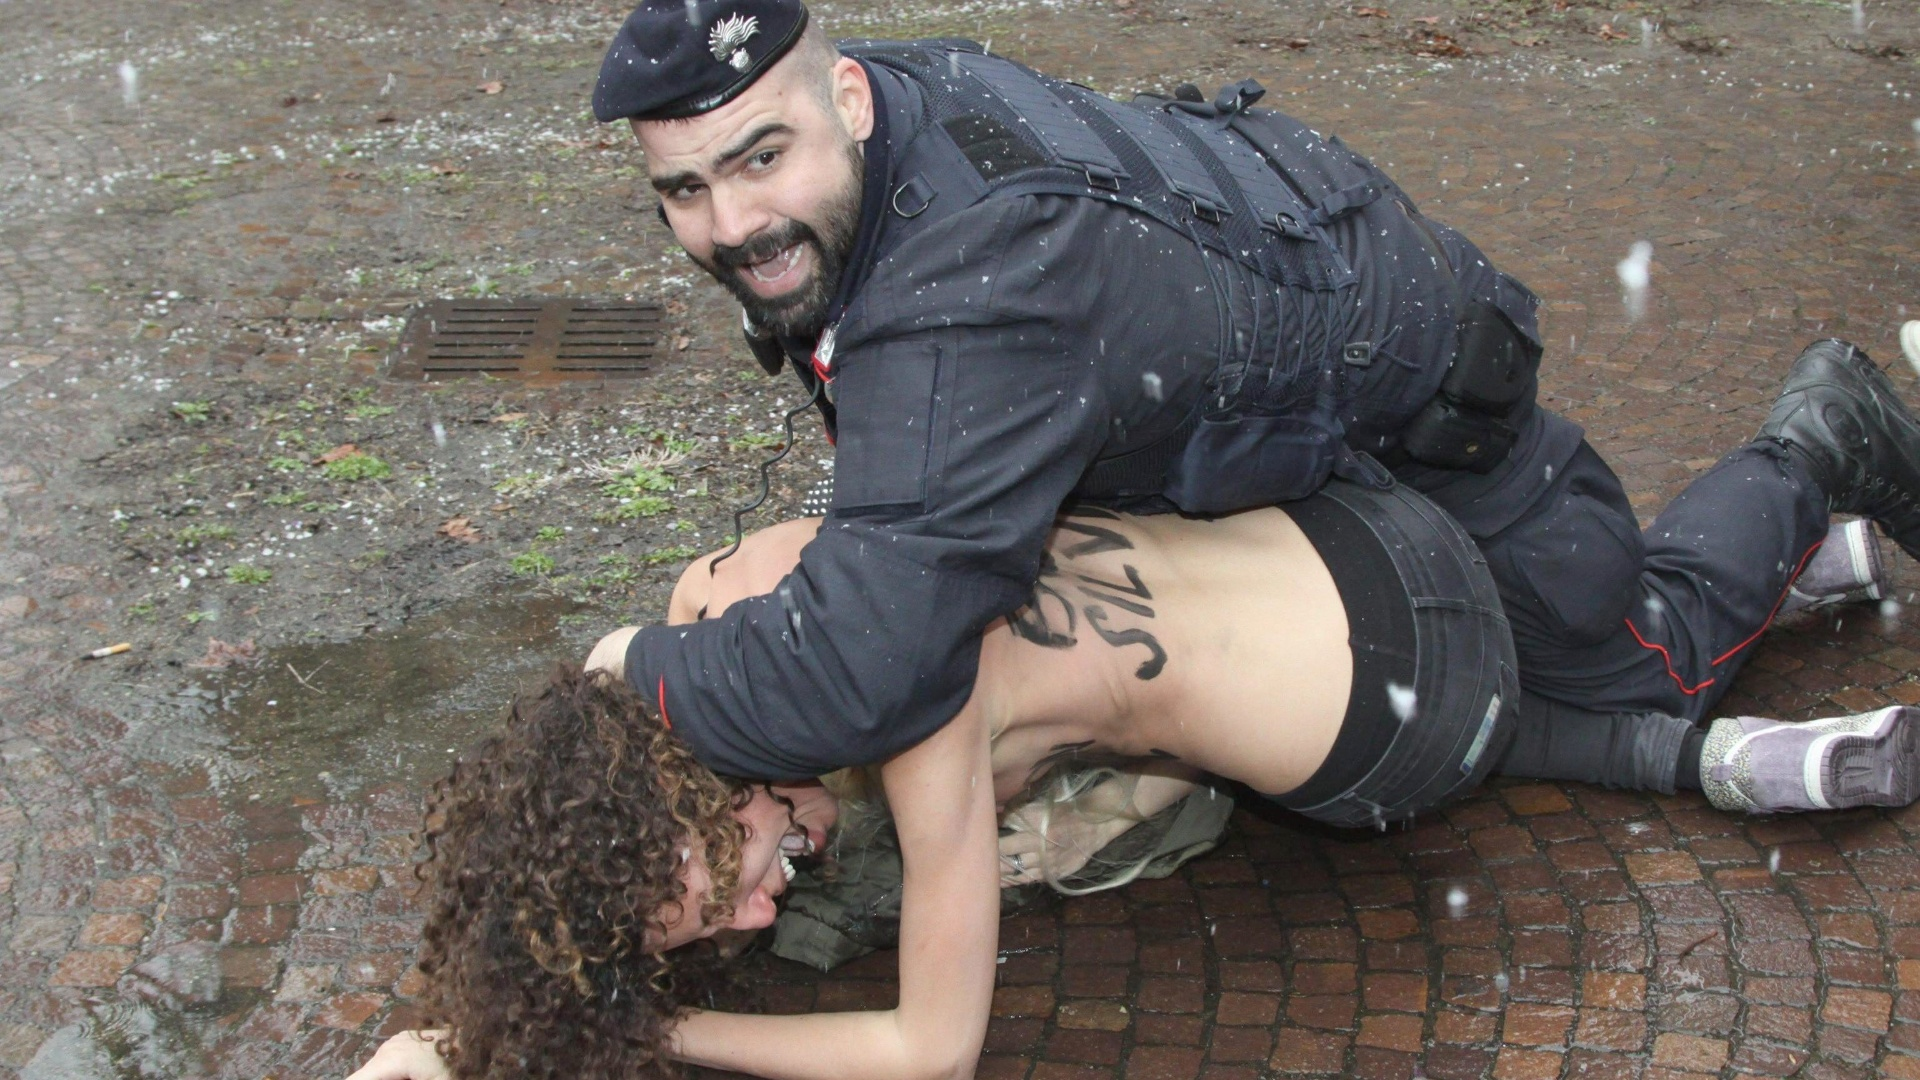 24.fev.2013 - Feministas do grupo Femen protestam contra ex-primeiro ministro italiano Silvio Berlusconi, do lado fora de onde o poltico est votando, na Itlia. A populao vai s urnas neste domingo e segunda-feira (25) nas eleies gerais no pas